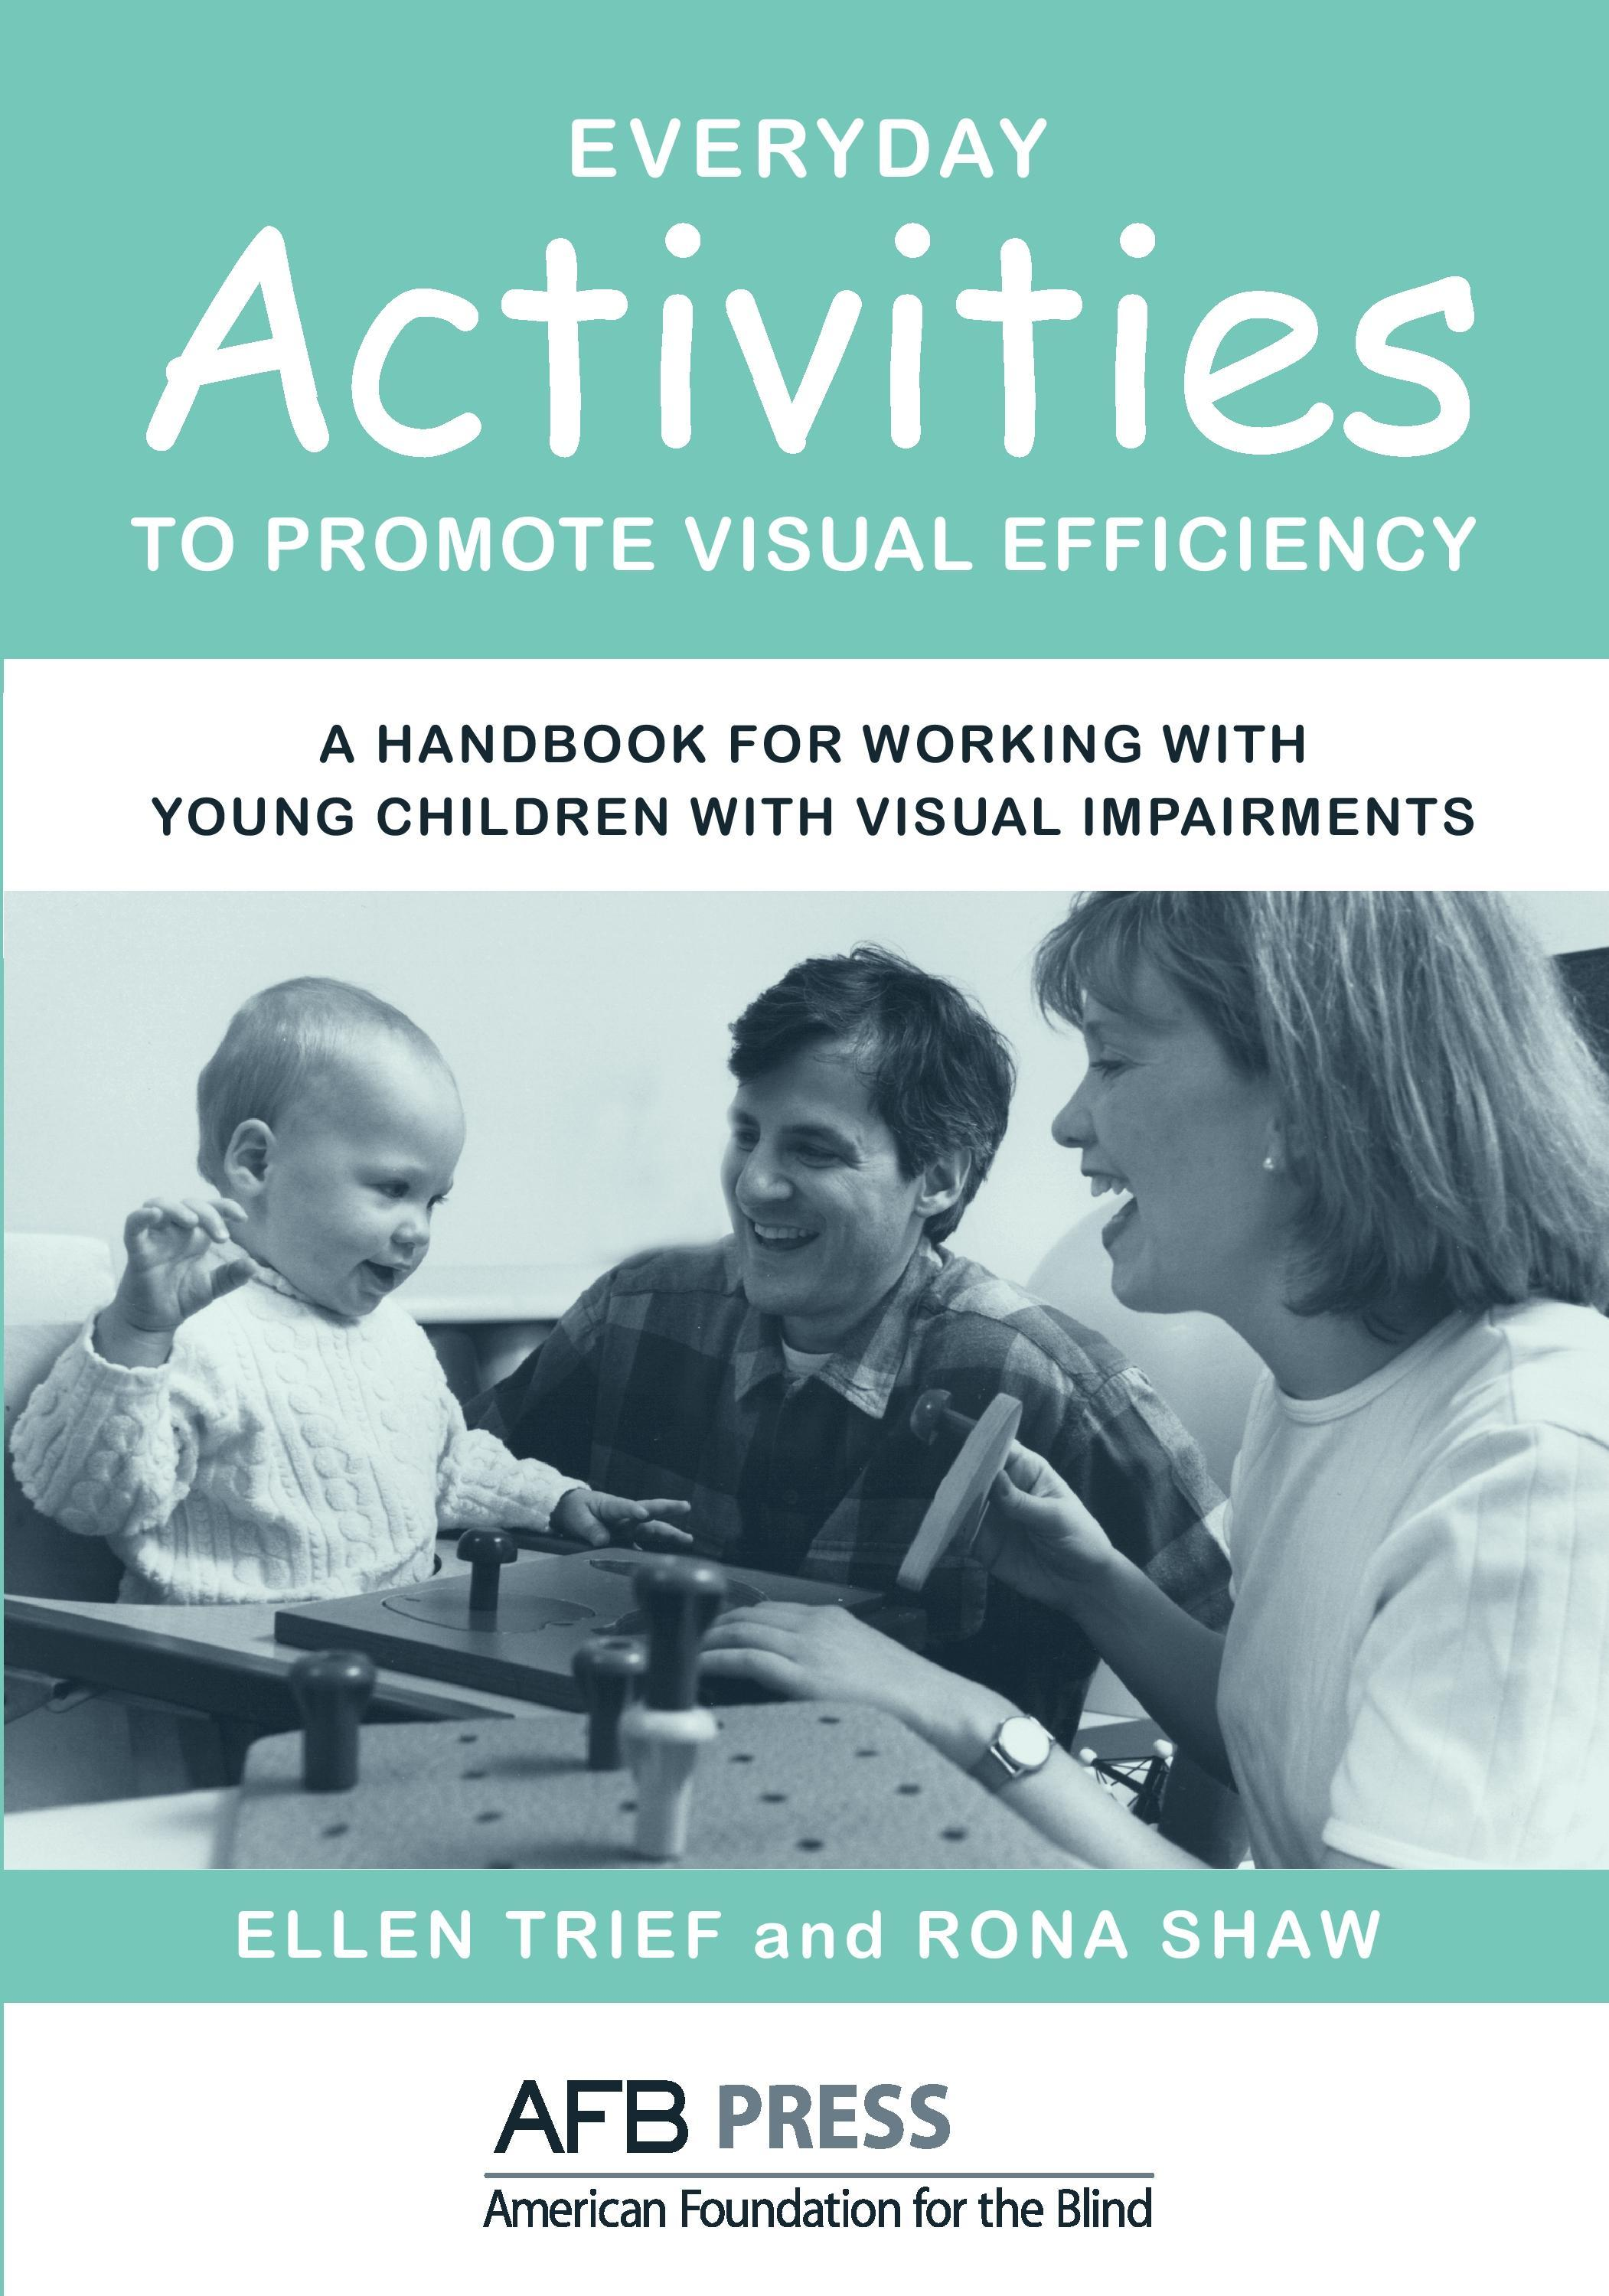 Everyday Activities to Promote Visual Efficiency: A Handbook for